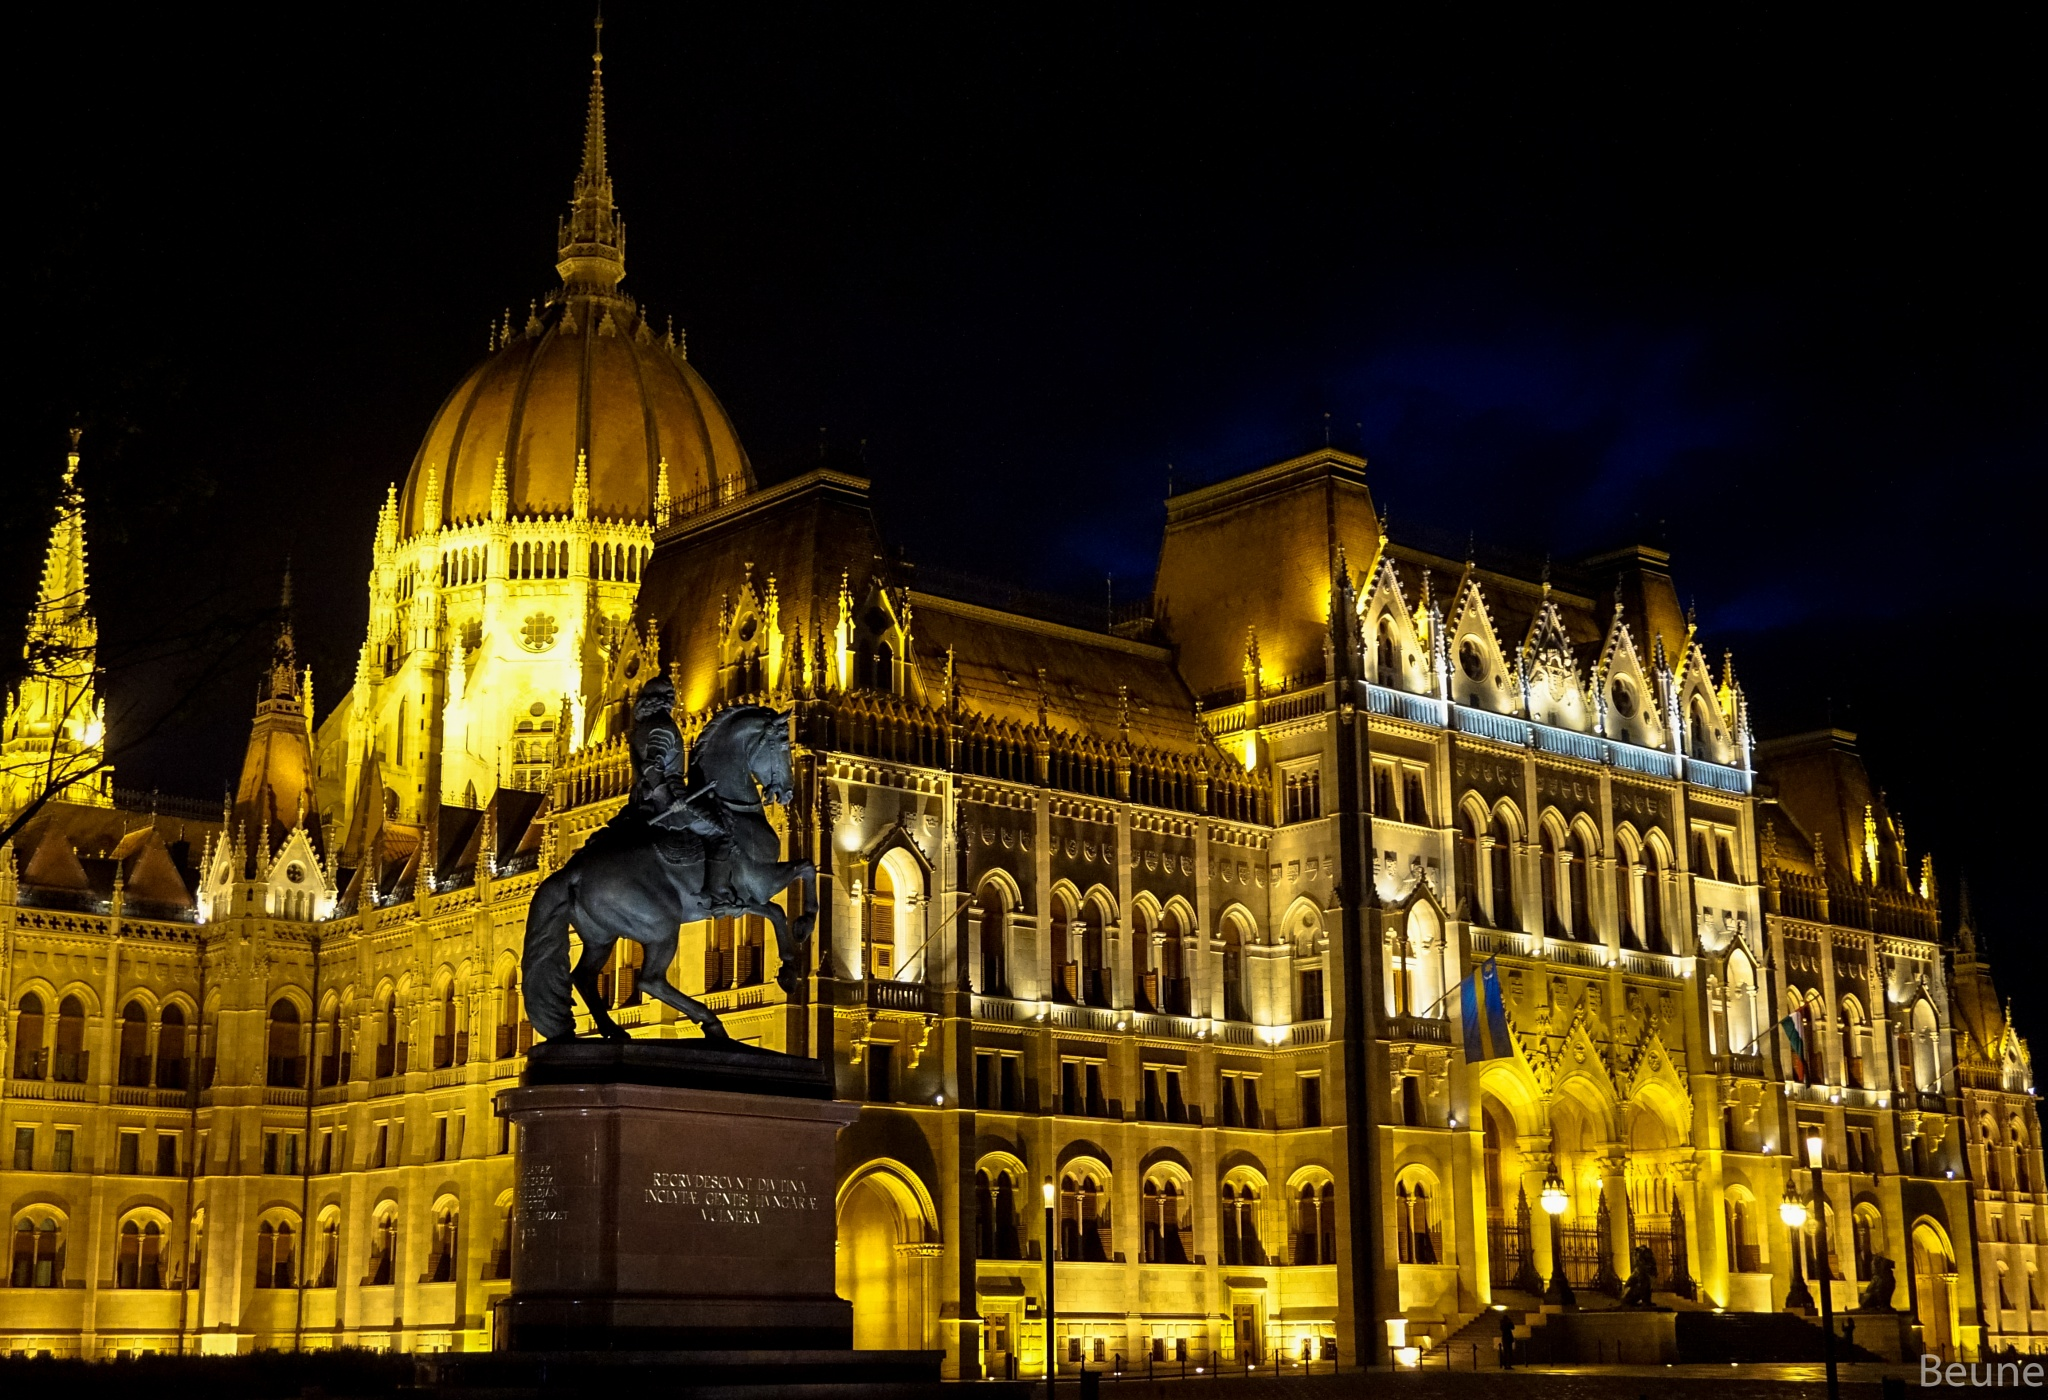 House of Parliament by beune